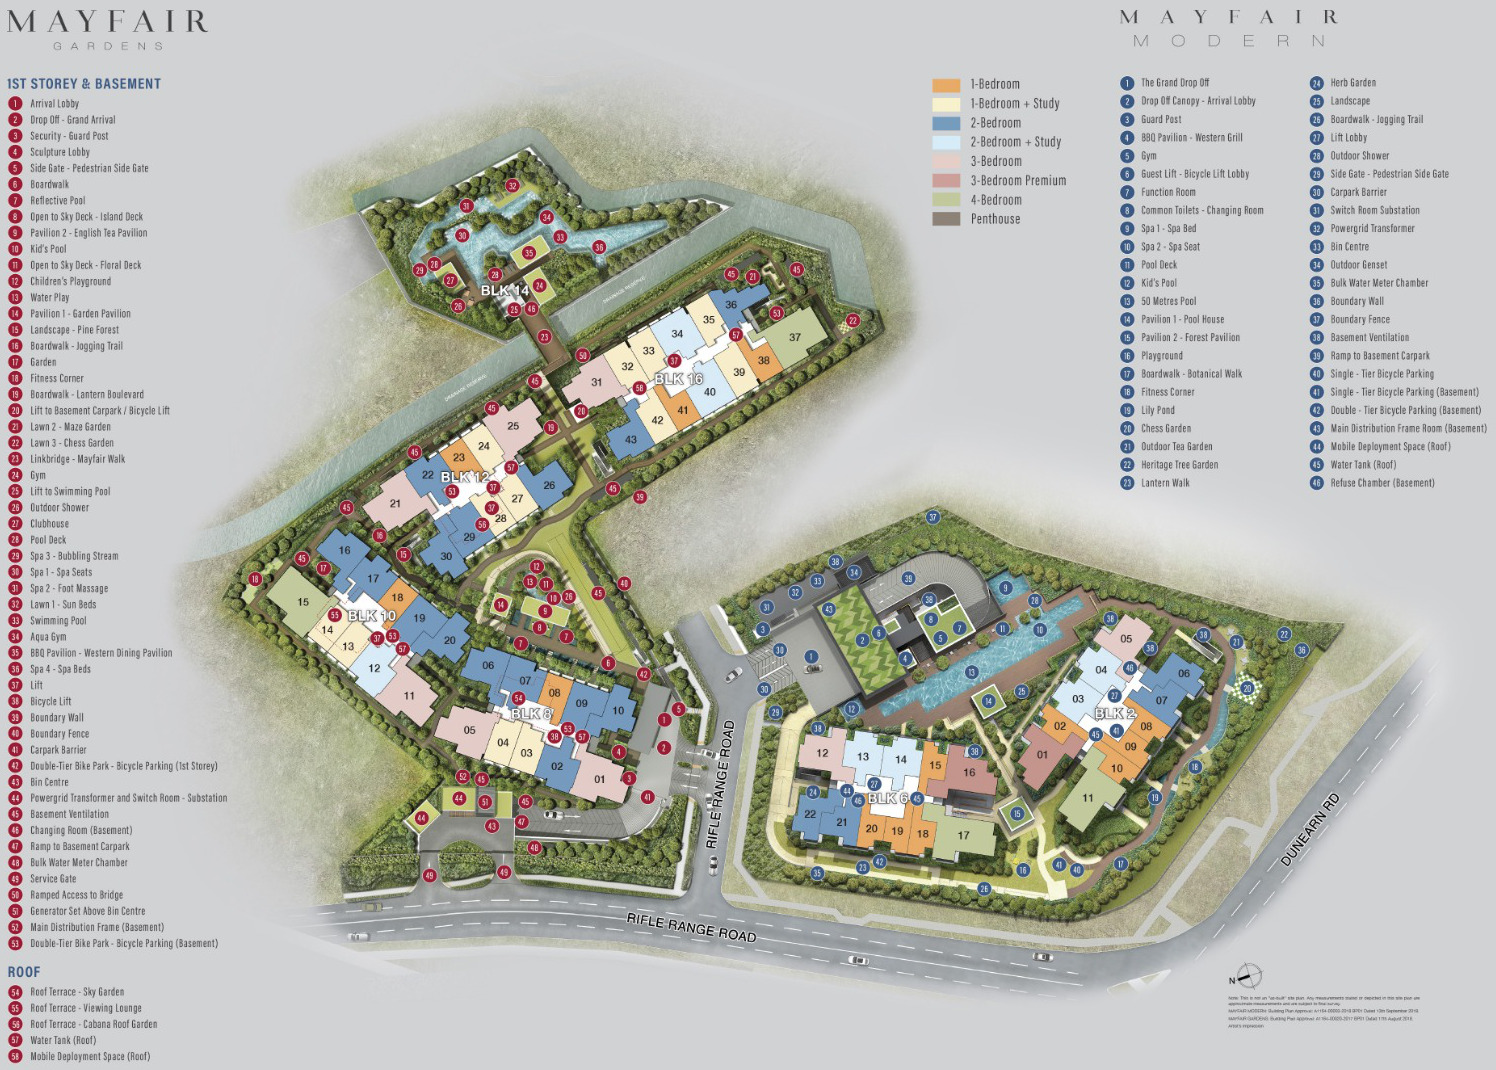 Mayfair-Modern-Mayfair-Gardens-Site-Plans